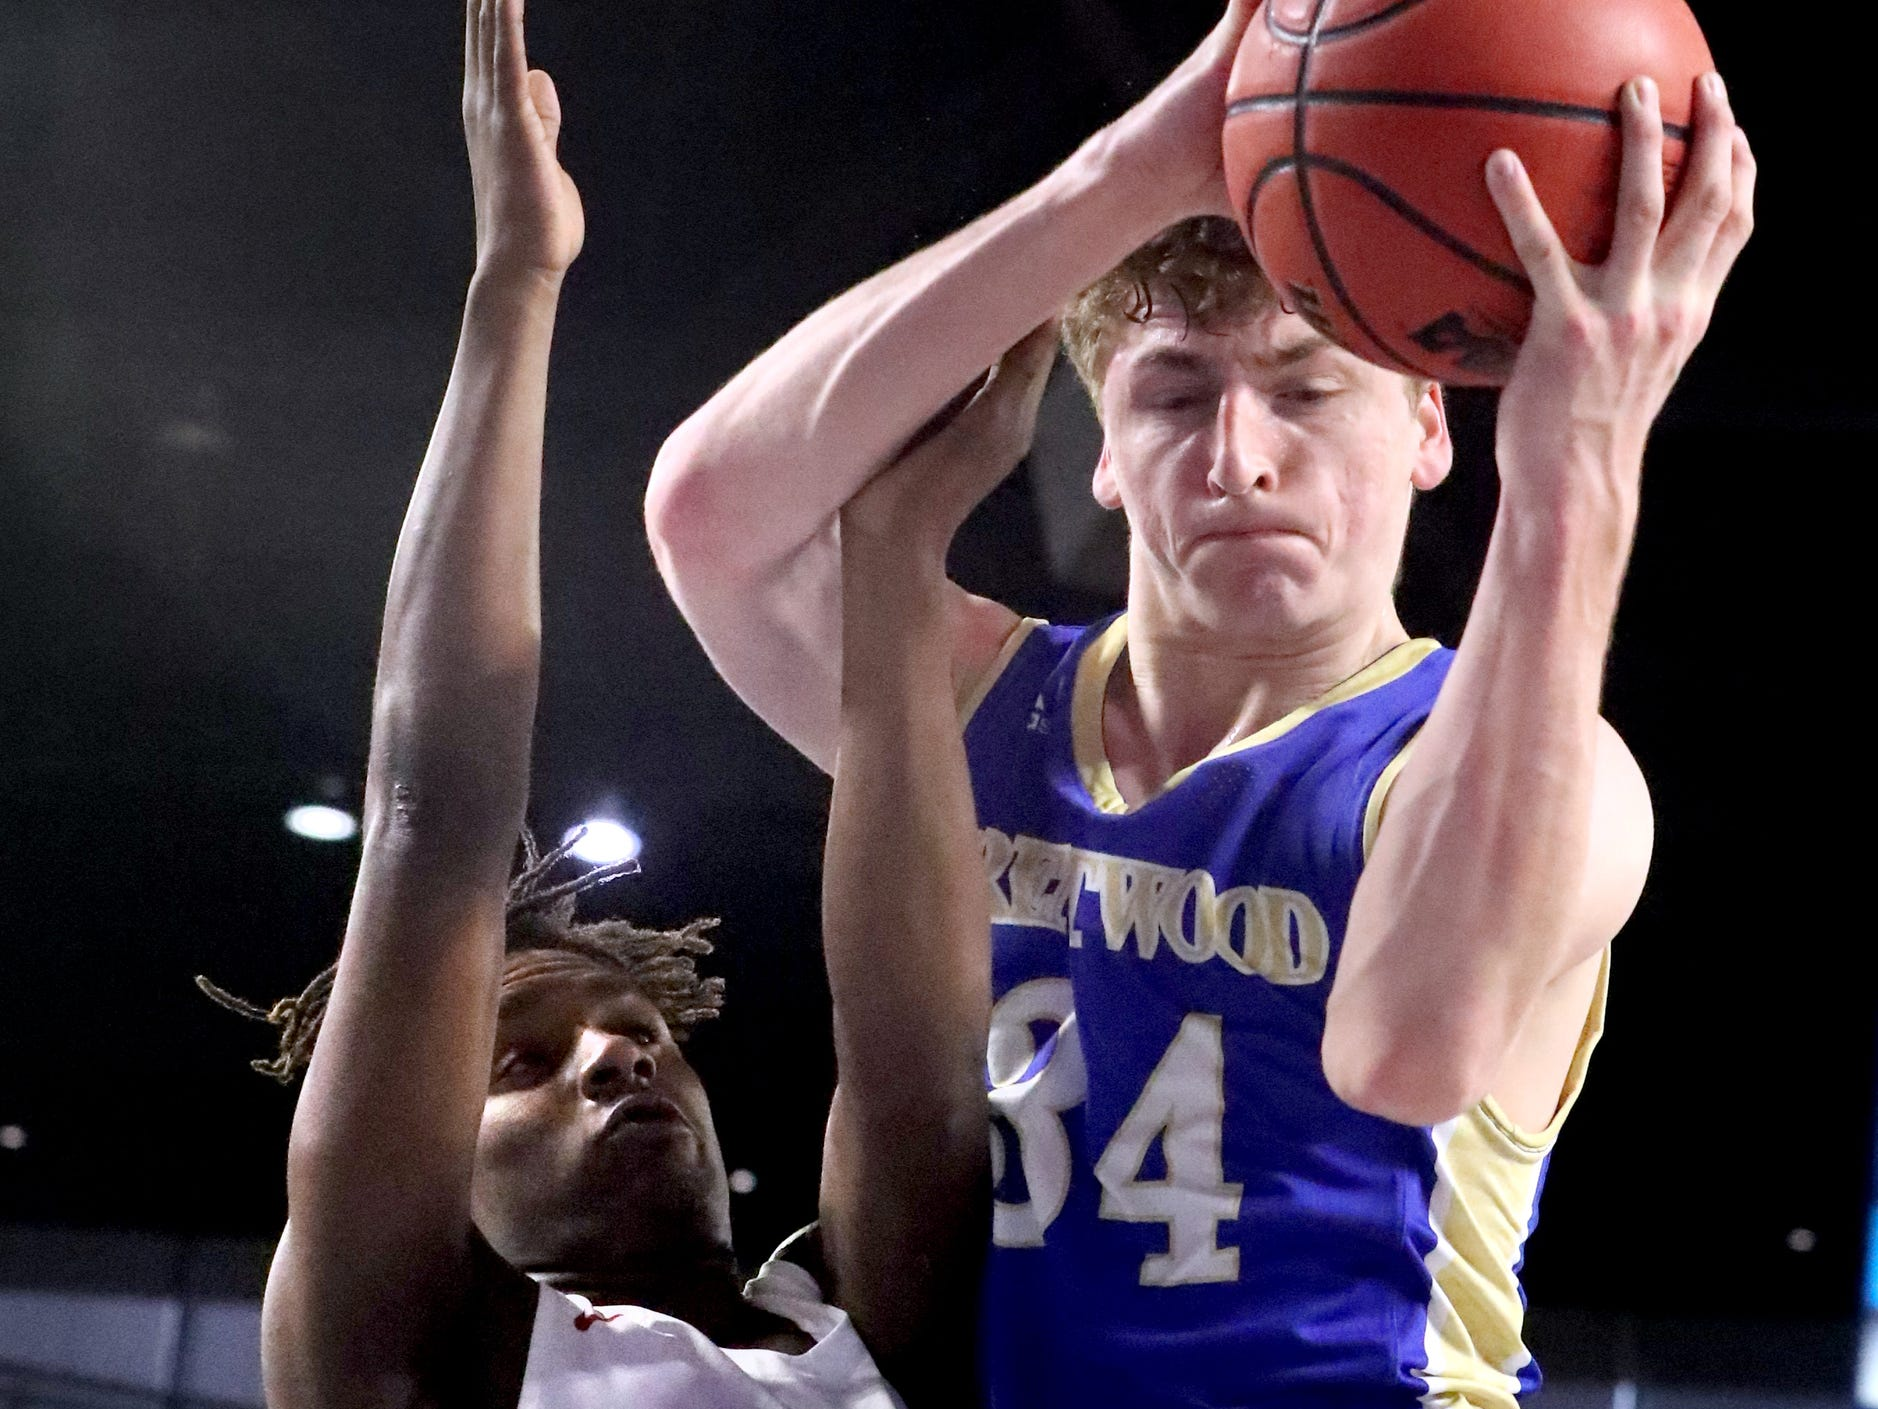 Brentwood's Ben Mills (34) grabs a rebound as Oakland's Mandrell Grant (4) guards him during the quarterfinal round of the TSSAA Class AAA Boys State Tournament, on Thursday, March 14, 2019, at Murphy Center in Murfreesboro, Tenn.